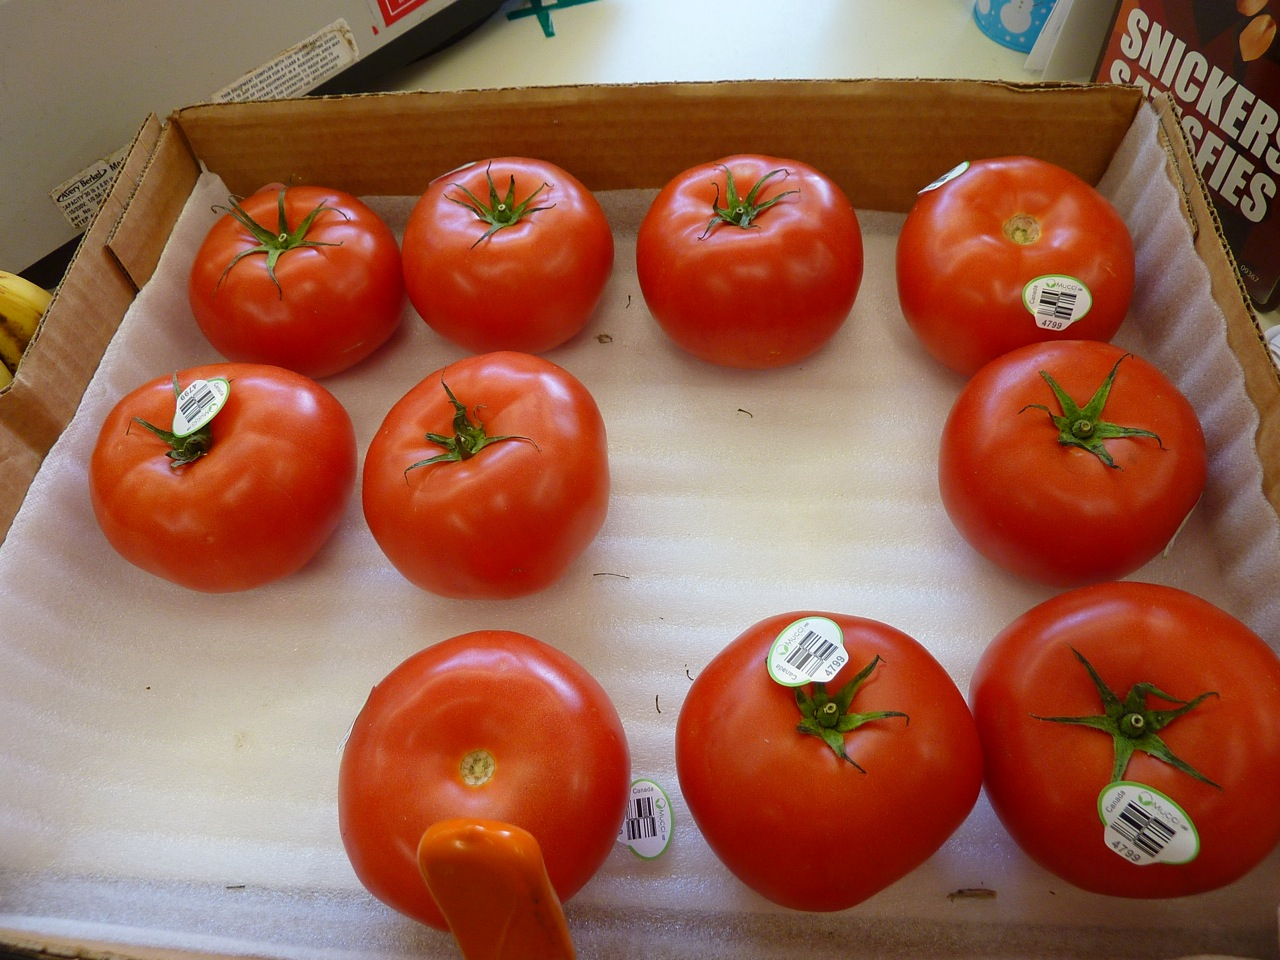 Tomatoes sold at Thwaites Market in Methuen, Mass.